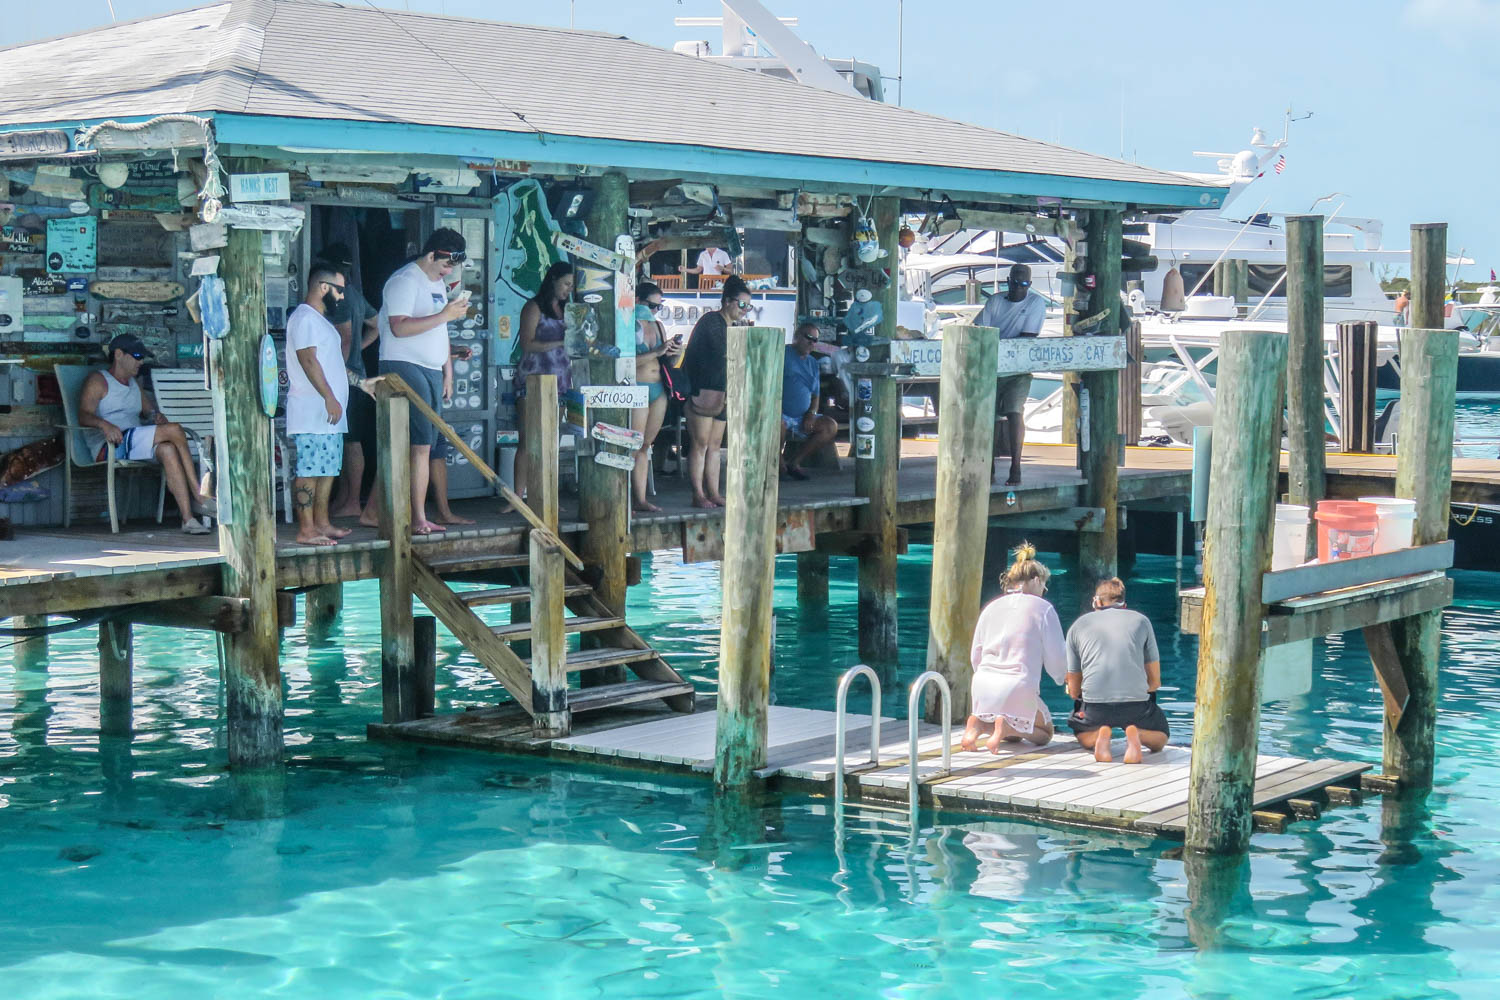 Compass Cay Marina Bahamas Swim with Sharks adventure in the Exuma Islands. The Compass Cay Sharks are Nurse Sharks.